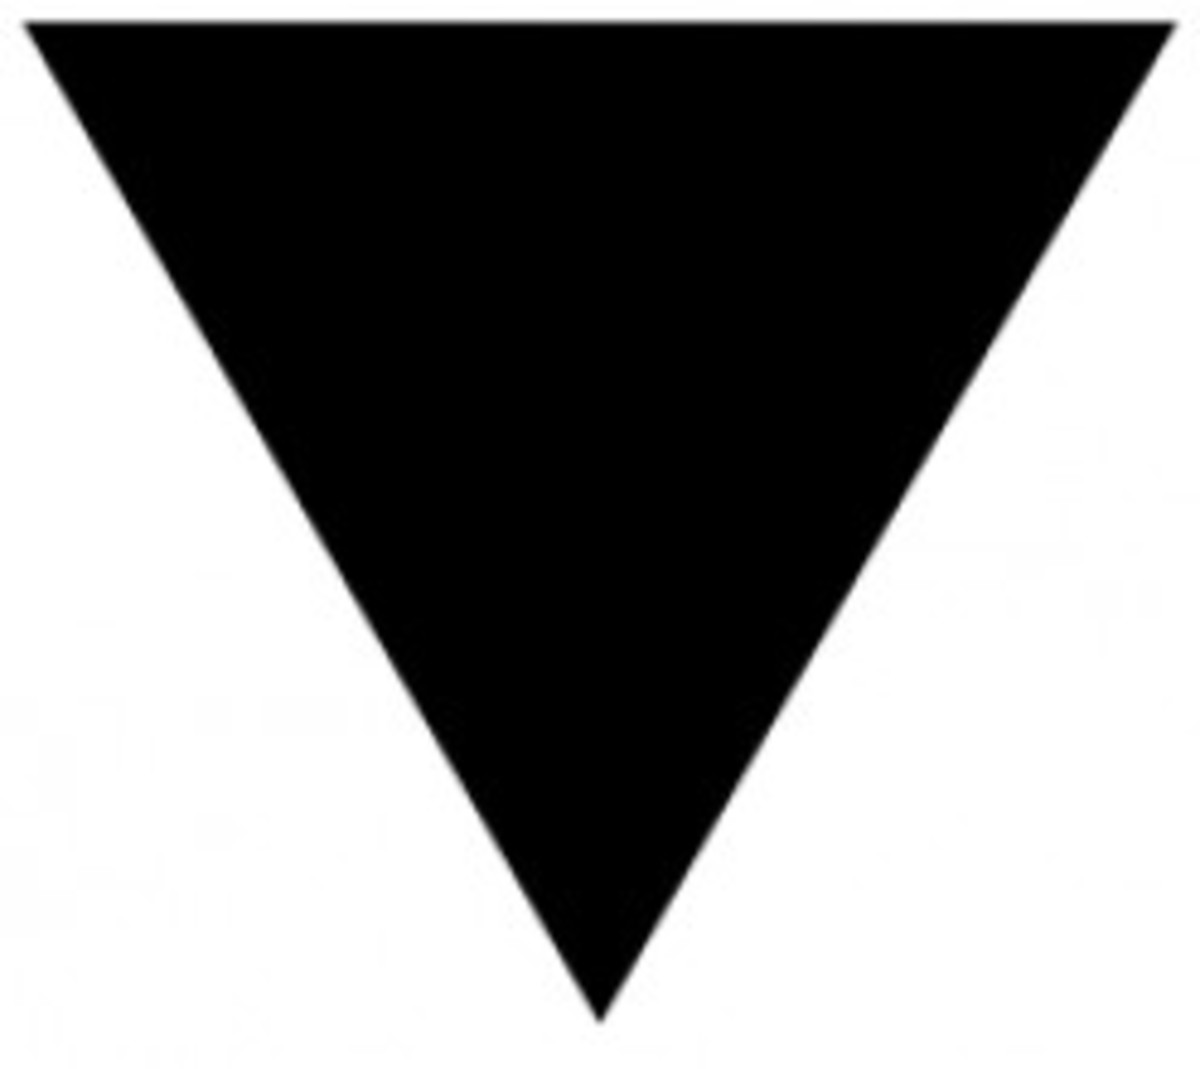 Black triangle